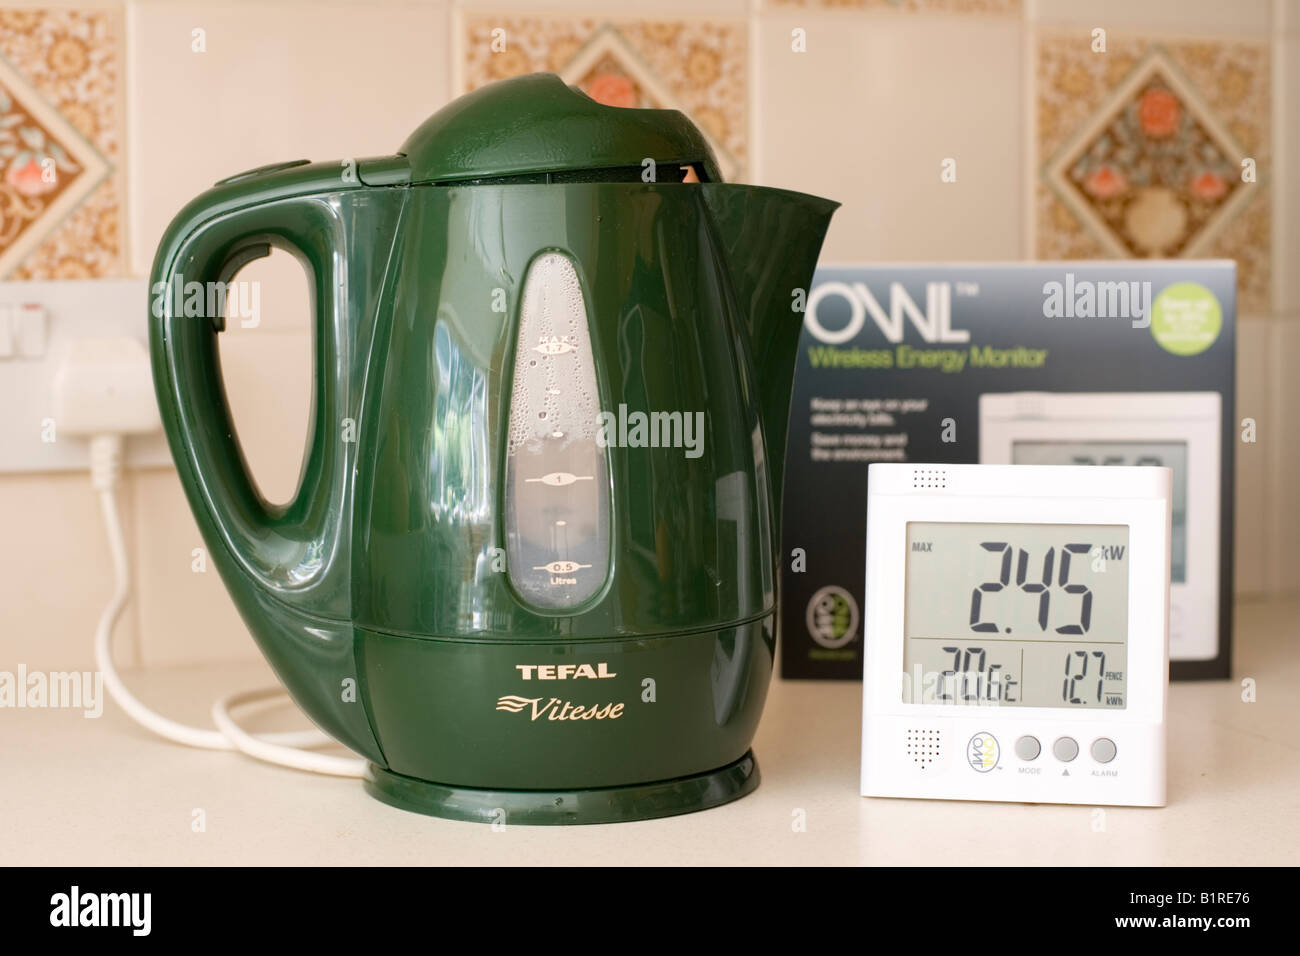 Owl energy monitor measuring electricity use of green kettle UK - Stock Image